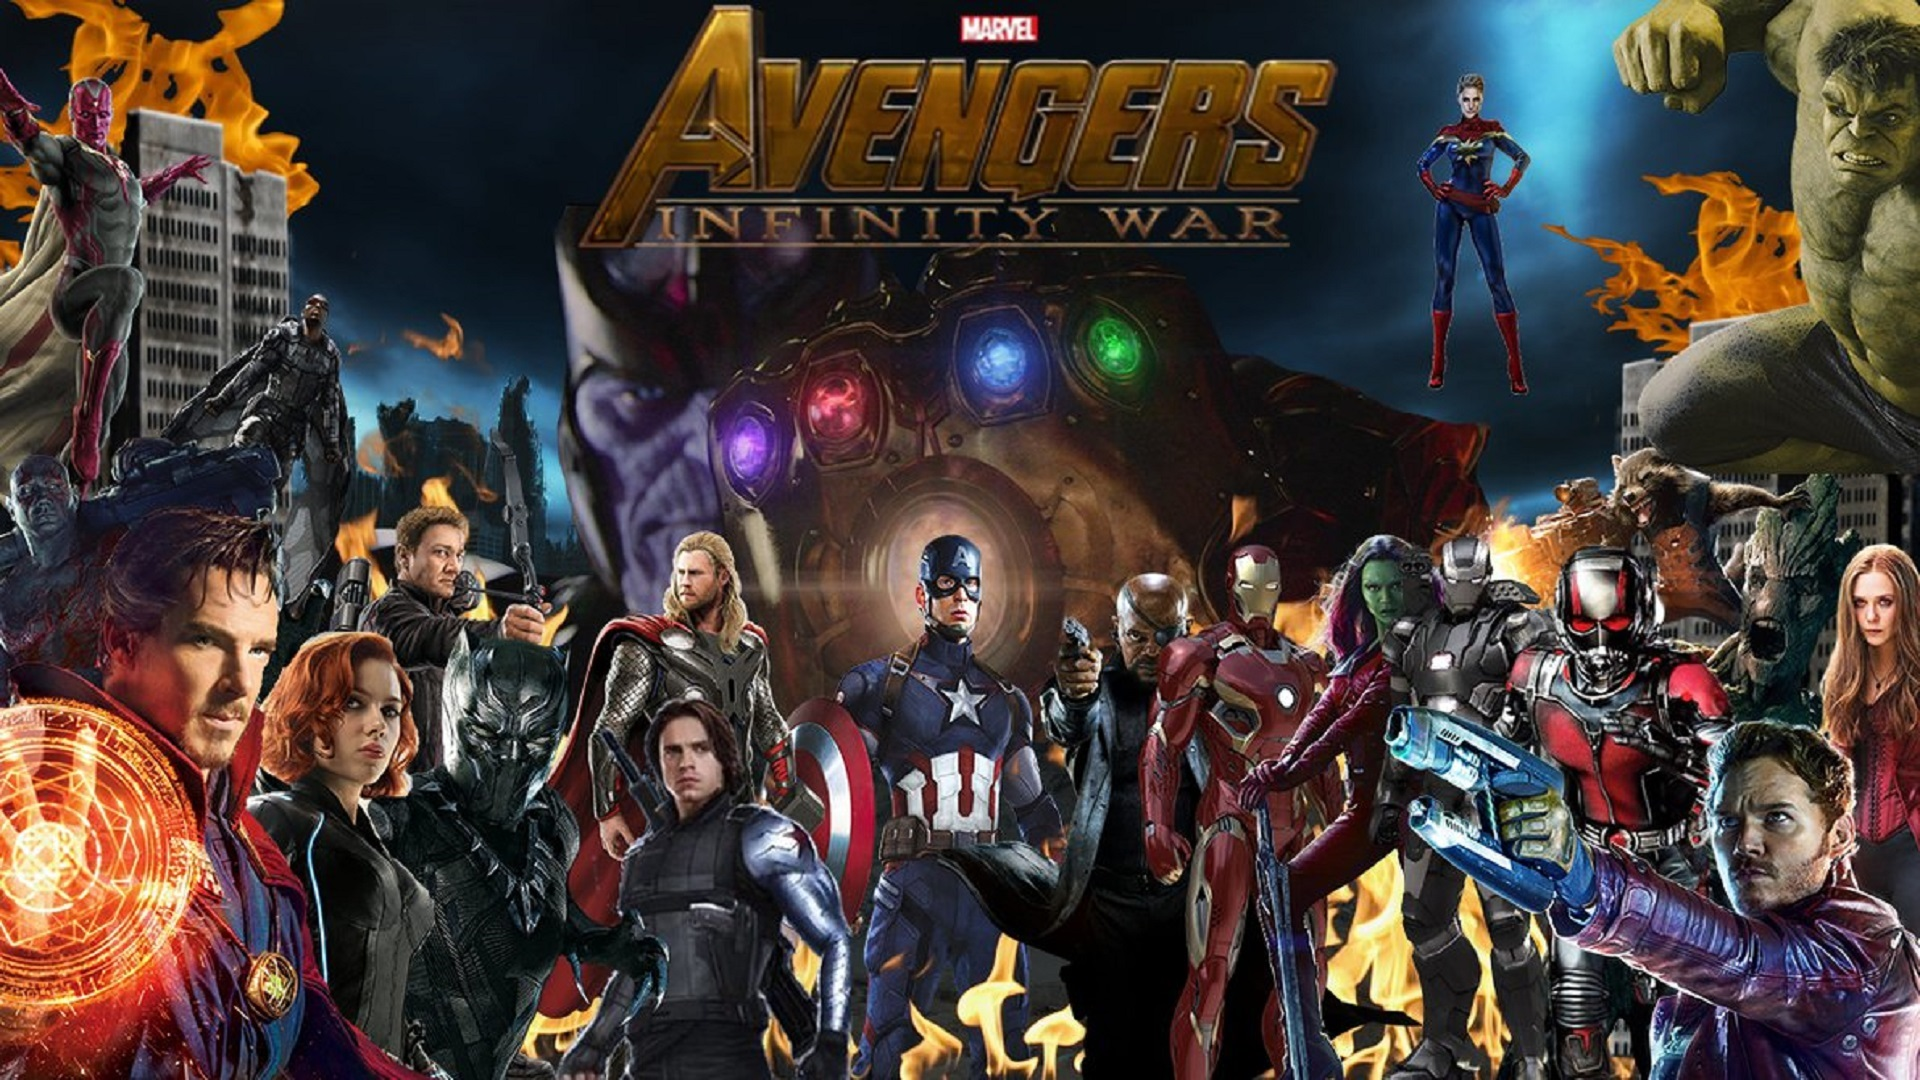 Avengers Infinity War: Which MCU Superheroes